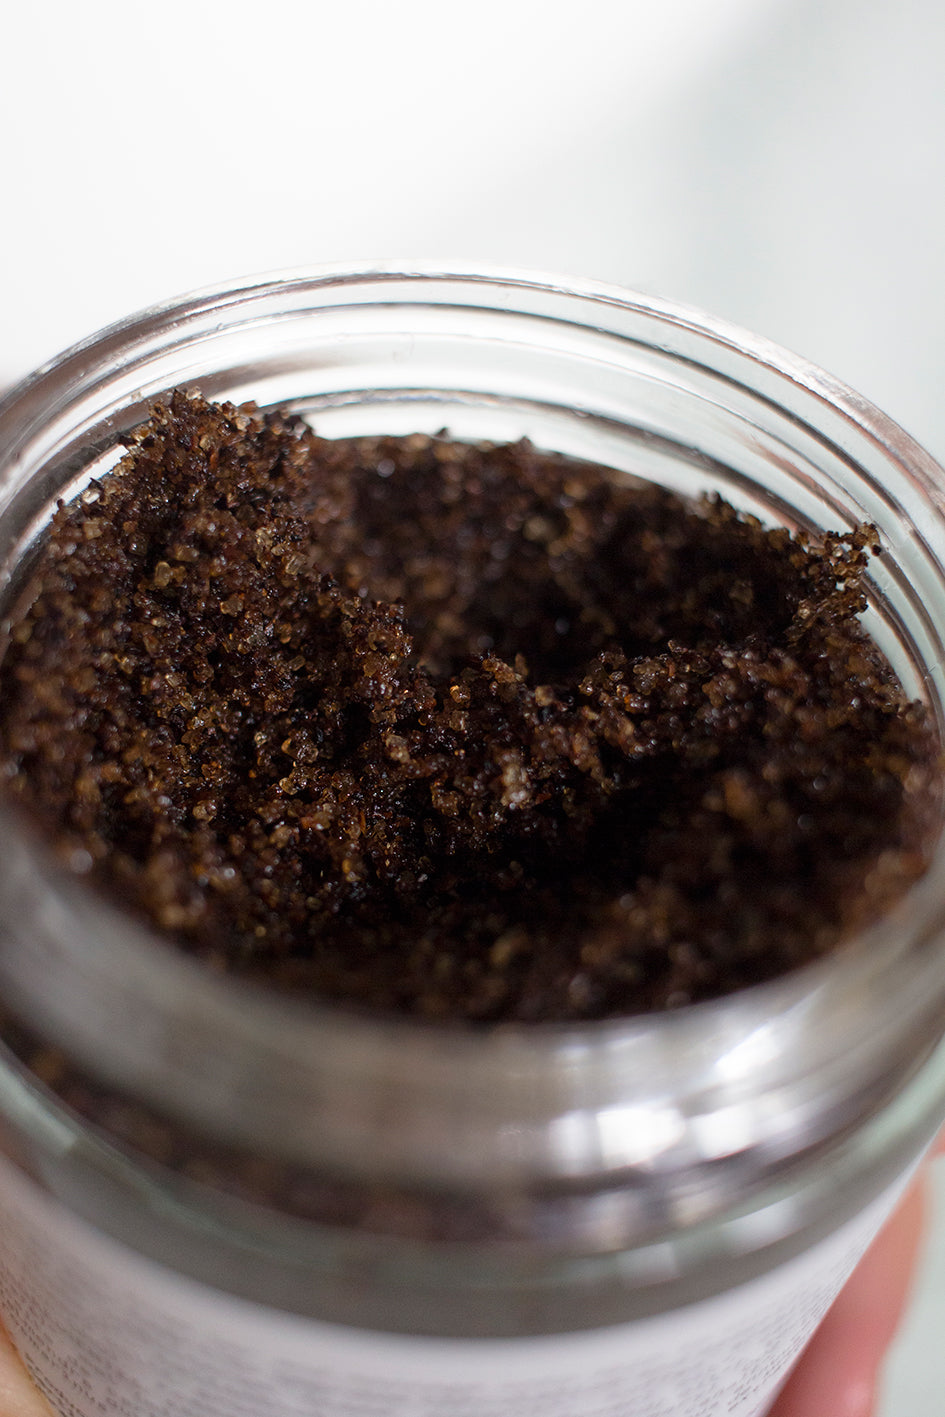 Nativo Skincare Coffee Scrub